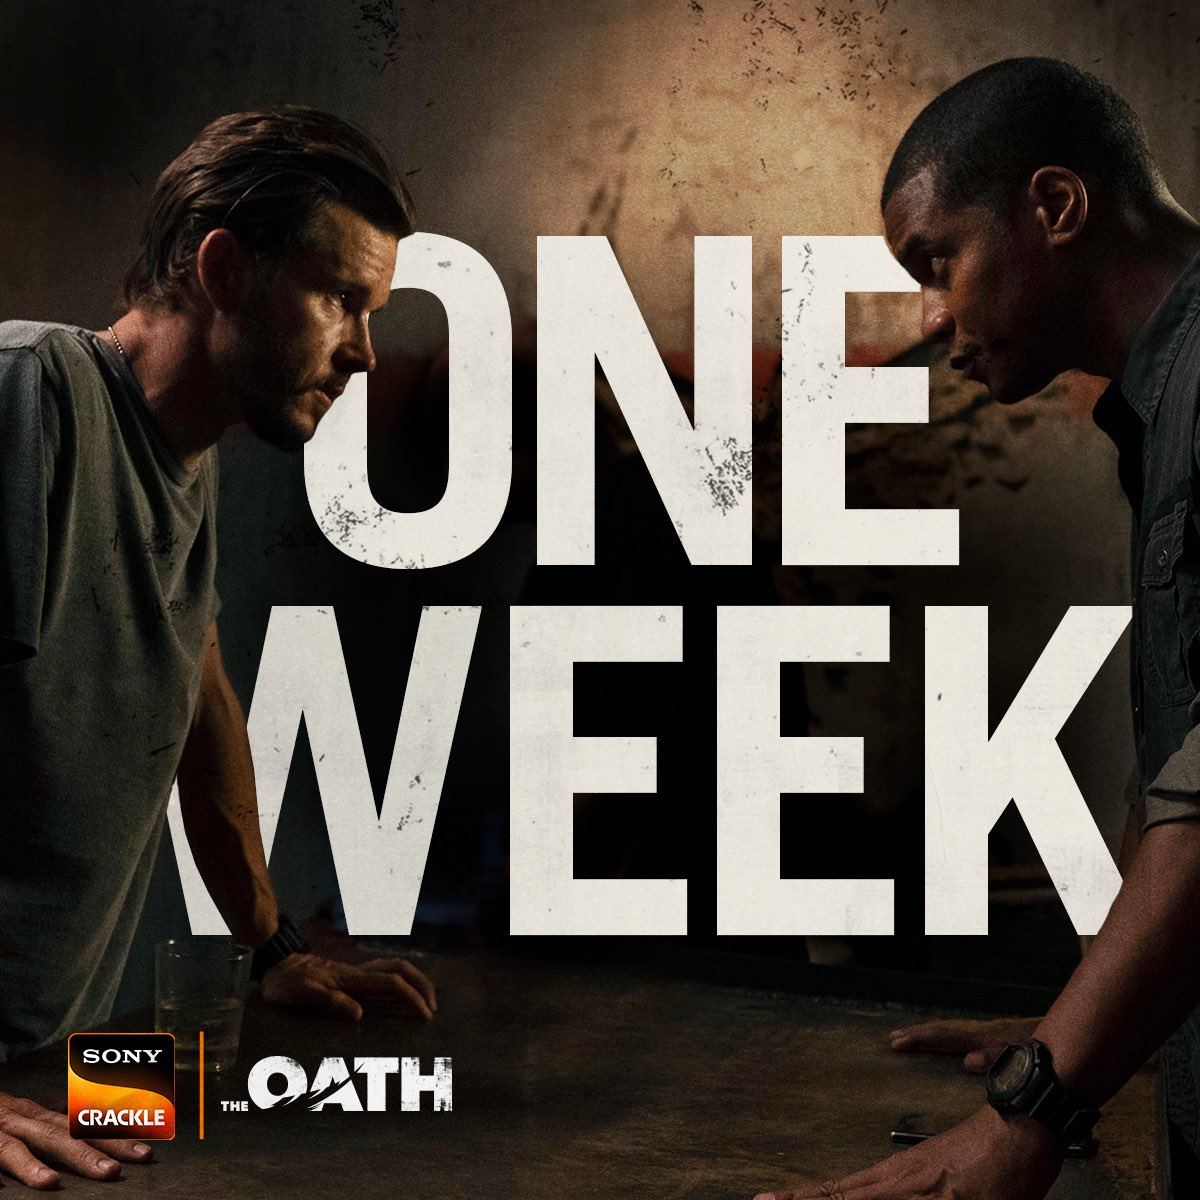 Only one week until @TheOathCrackle Season 2 premieres! ???? Catch it February 21 on @sonycrackle. Can't wait! https://t.co/53tO6CzT3L